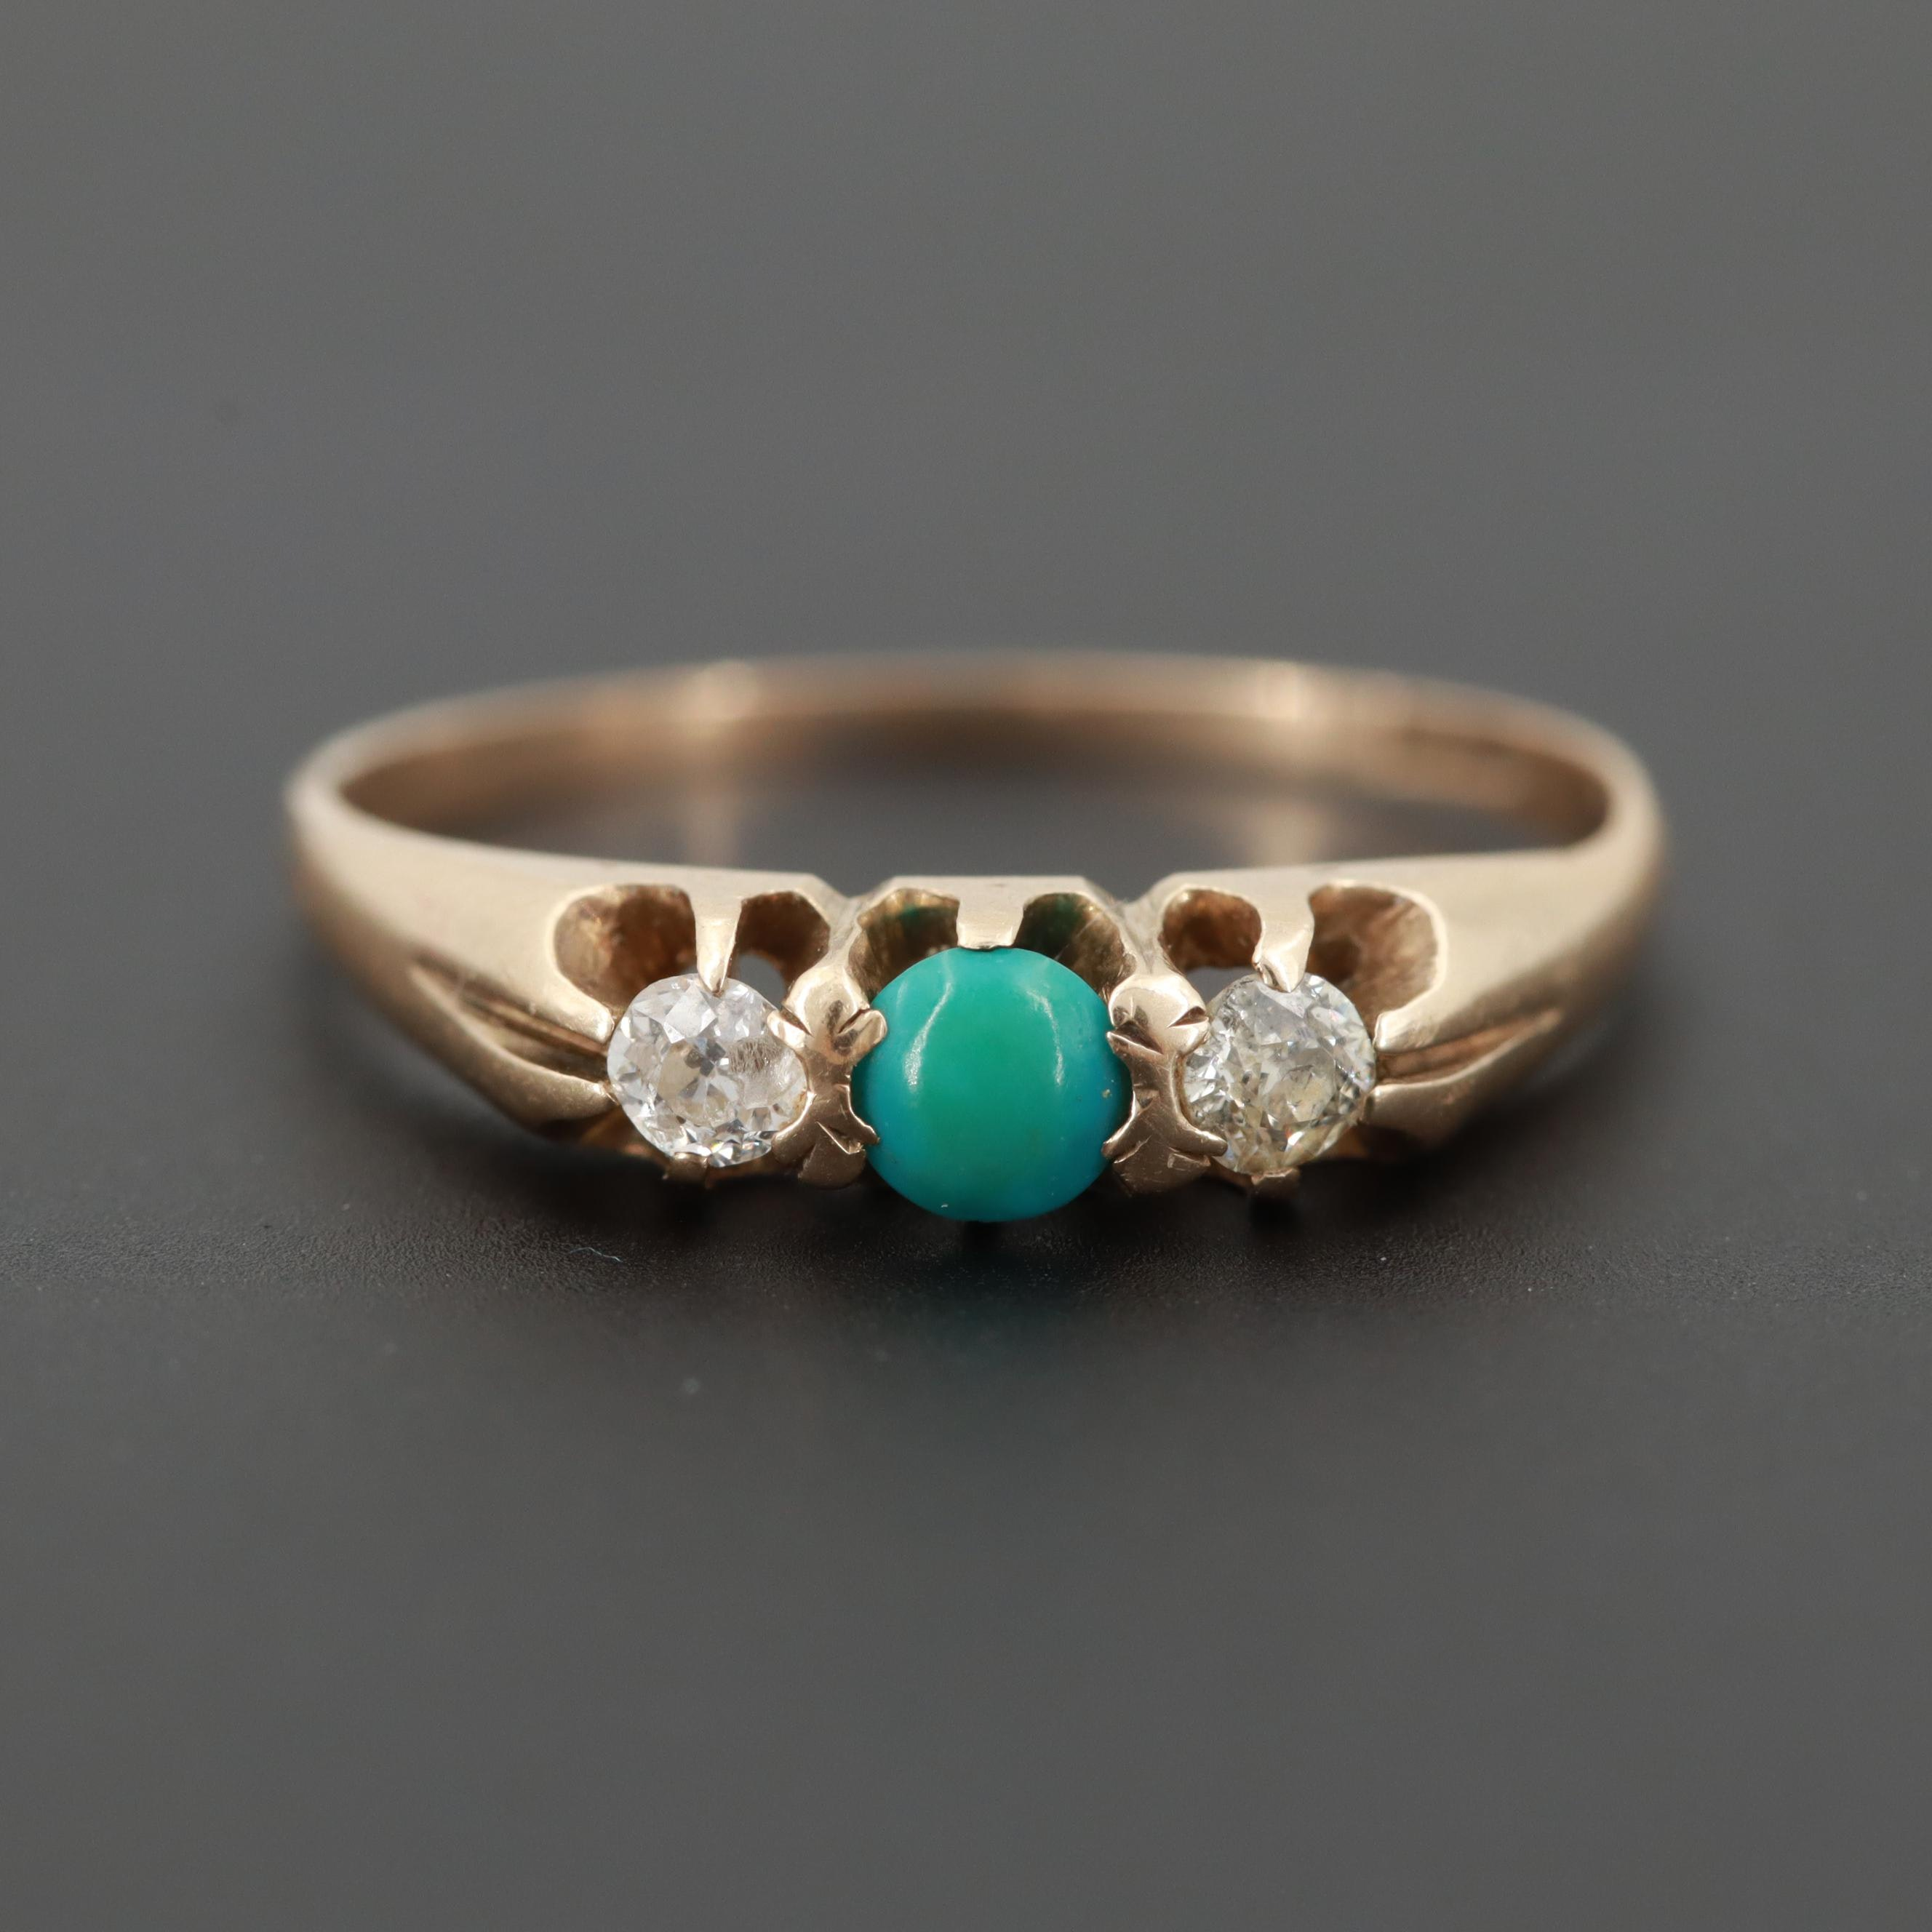 Victorian 14K Yellow Gold Turquoise and Diamond Ring